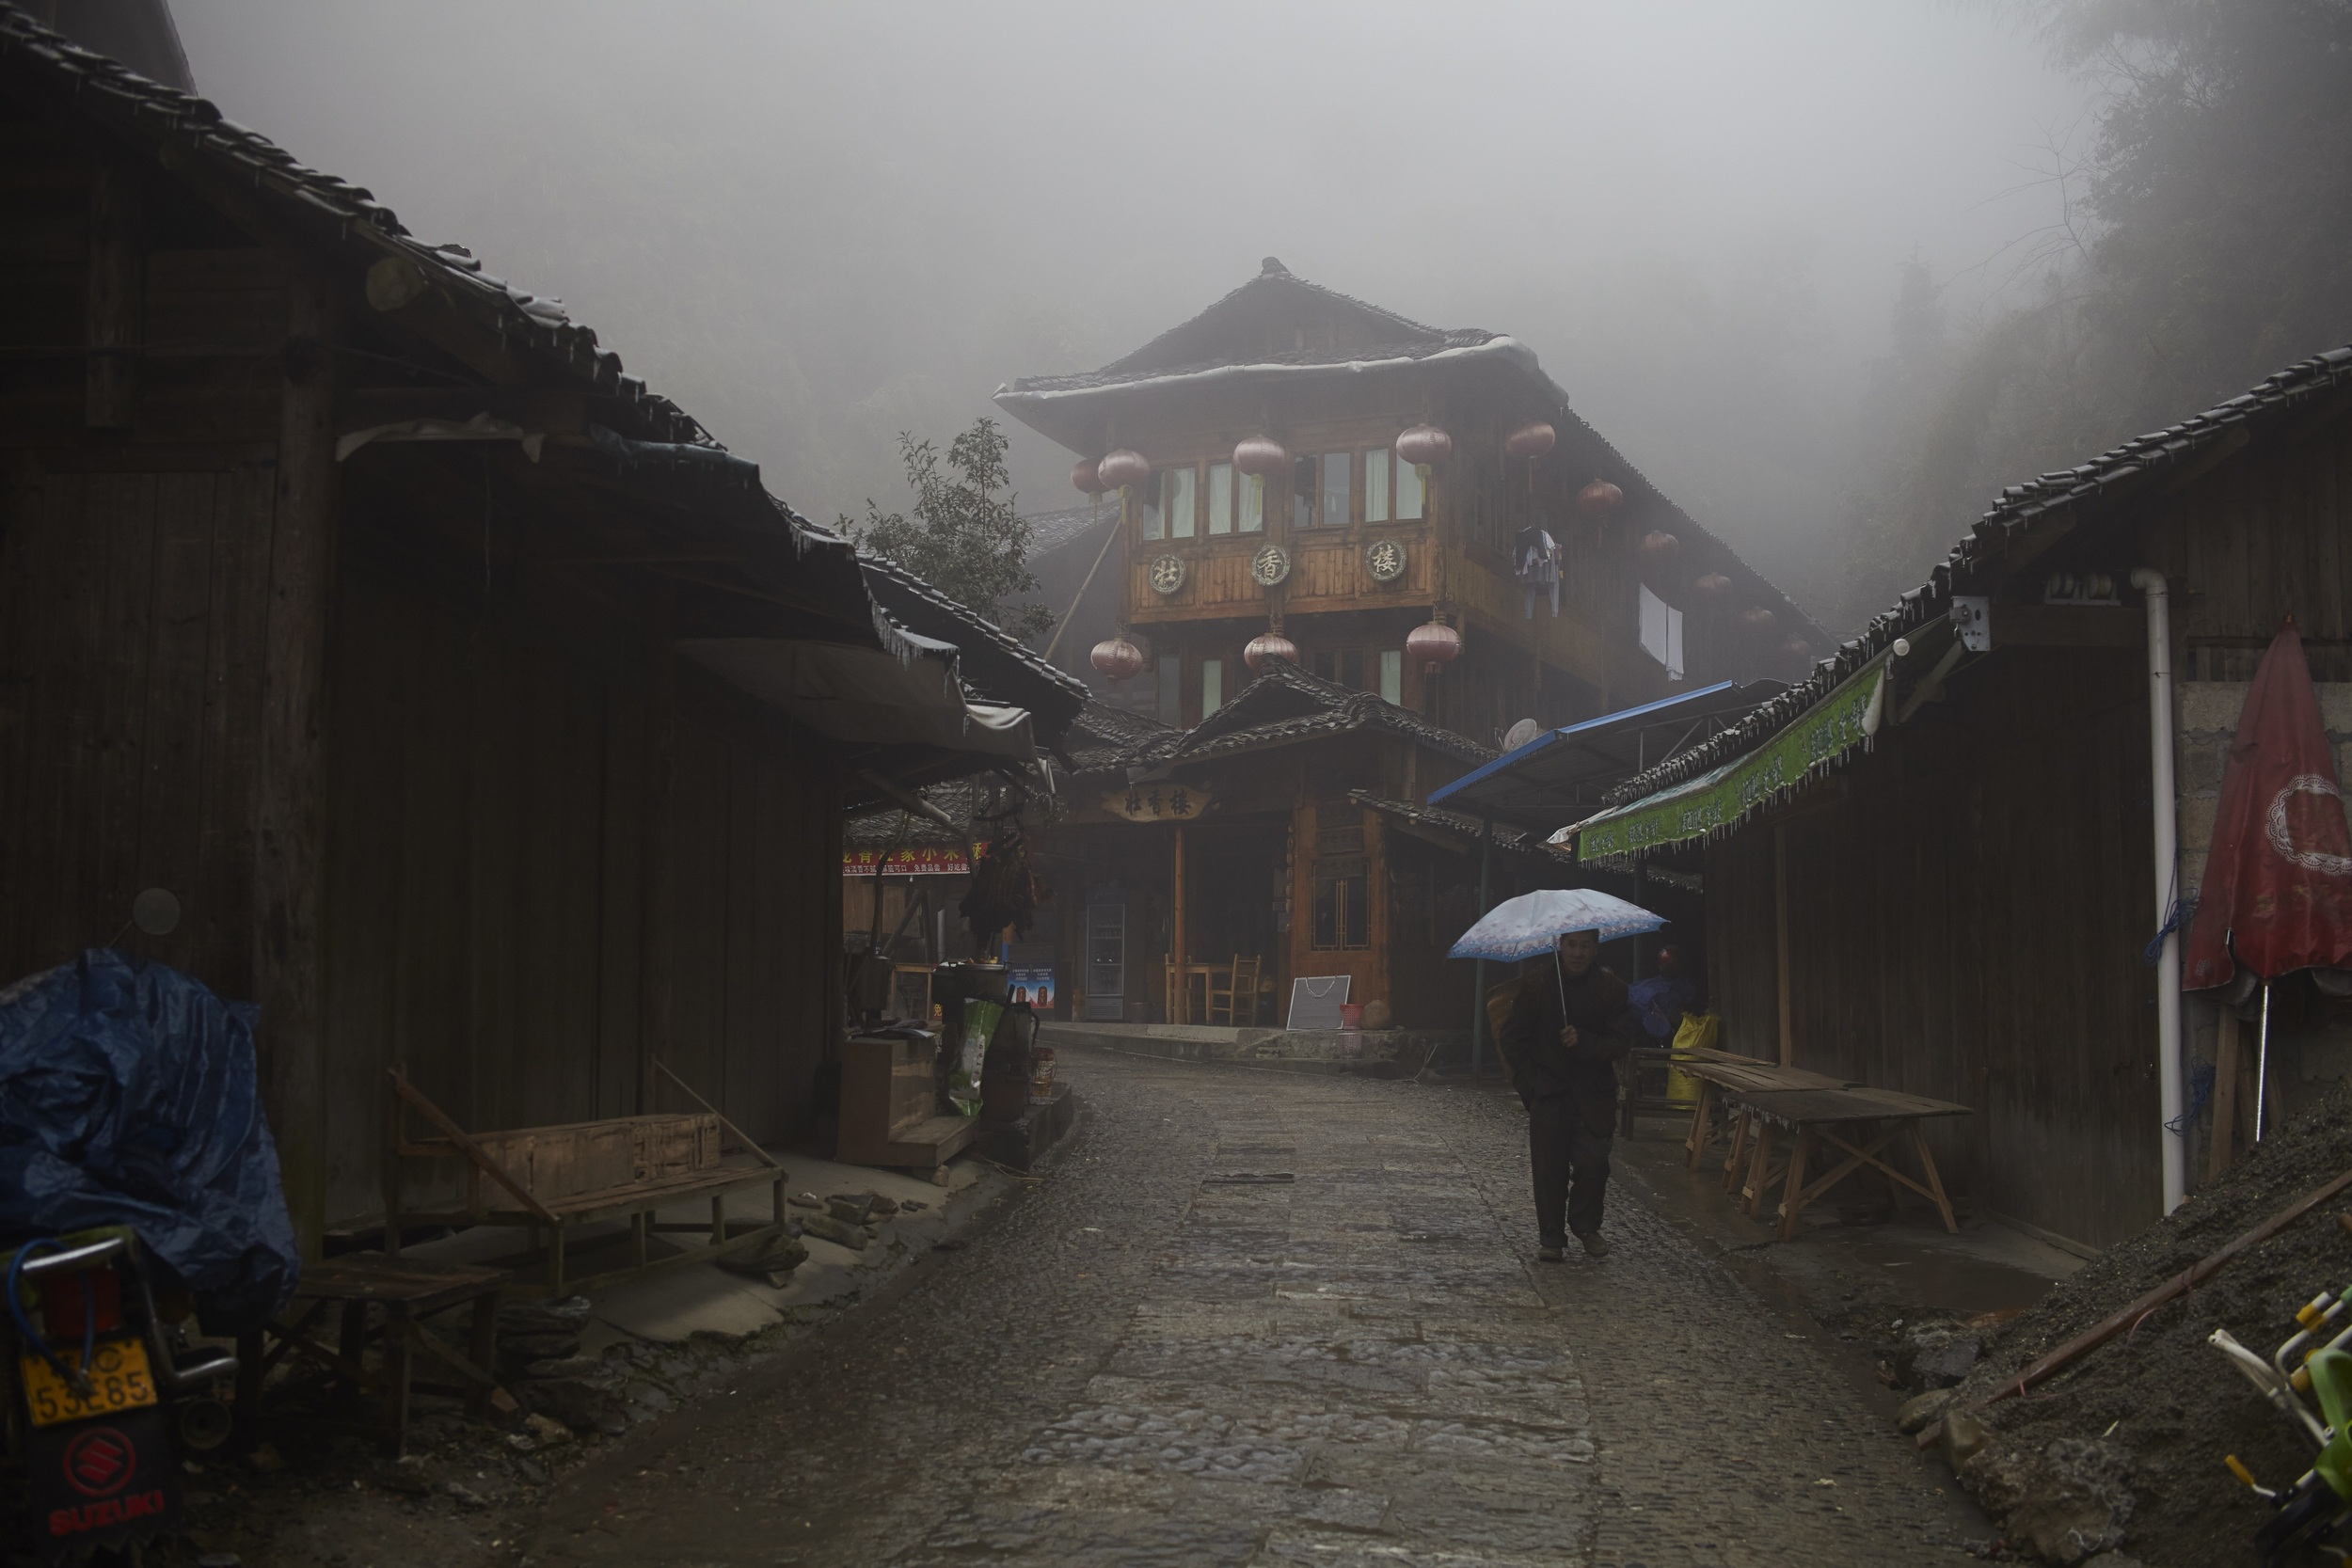 Rainy day in Guilin